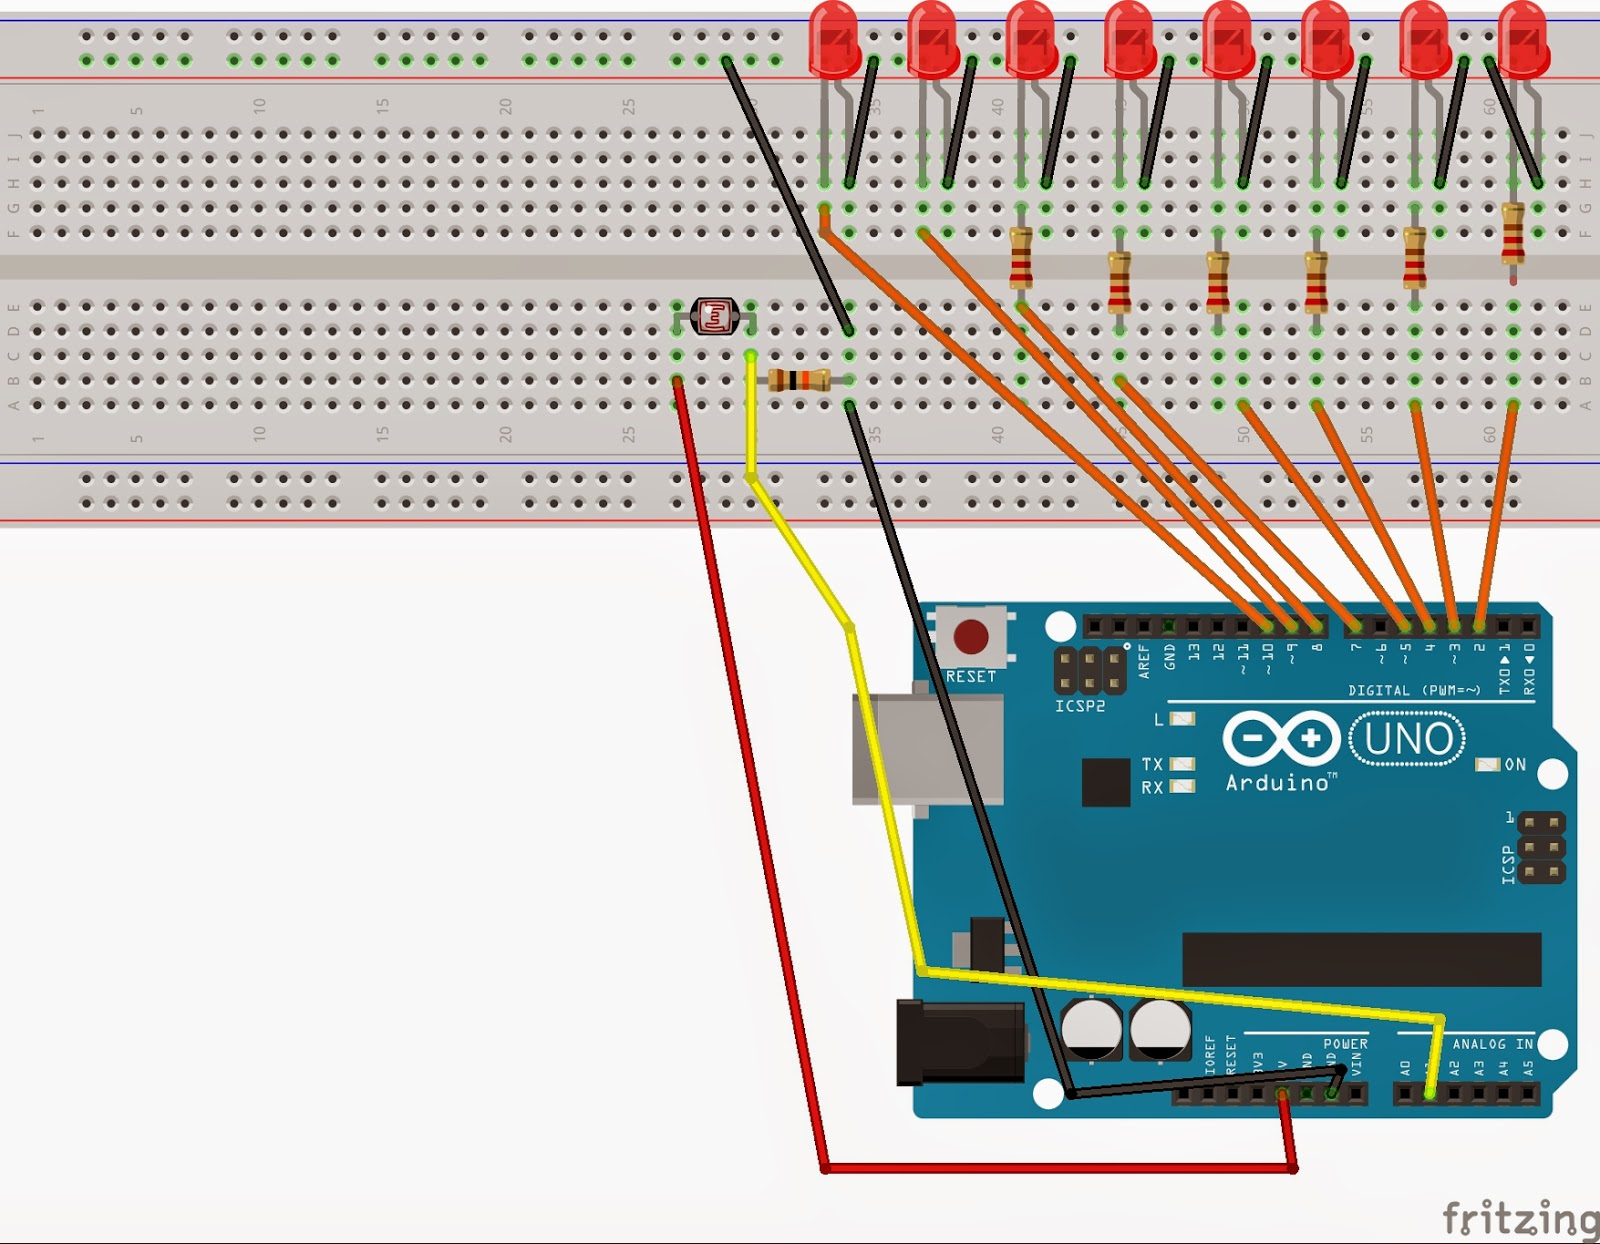 COURSE ON ARDUNIO: Automatic Light control using Labview and arduino